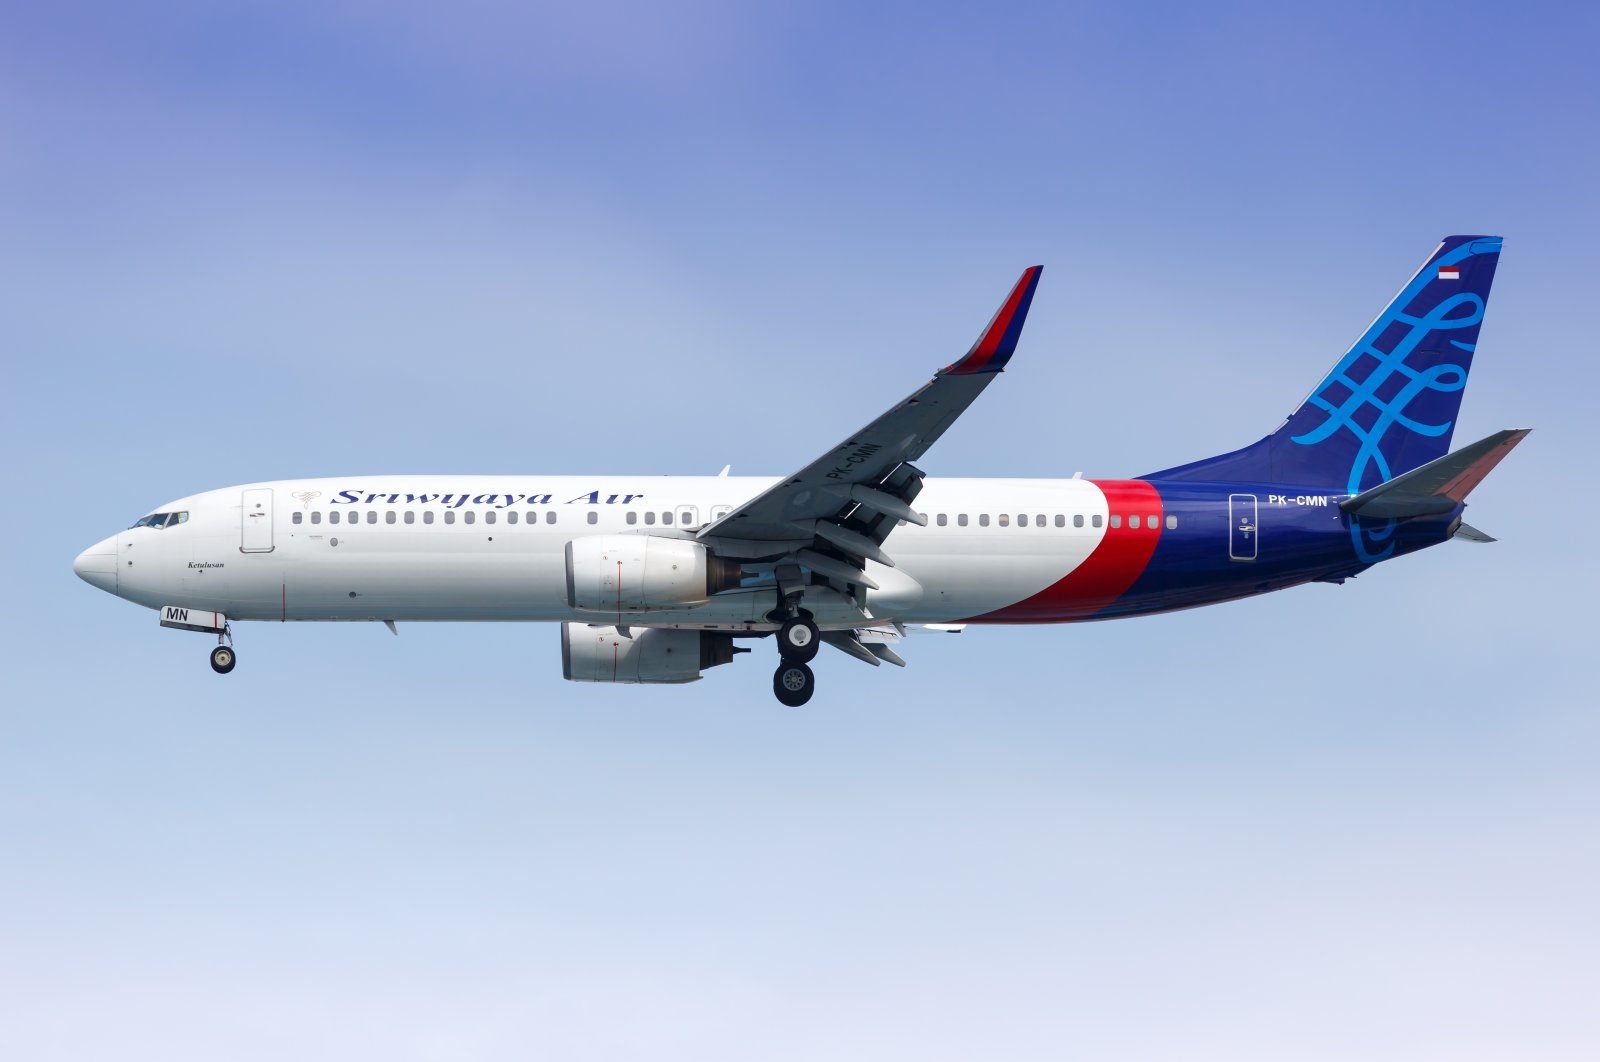 A Sriwijaya Air passenger plane seen flying in the sky in this undated photo.